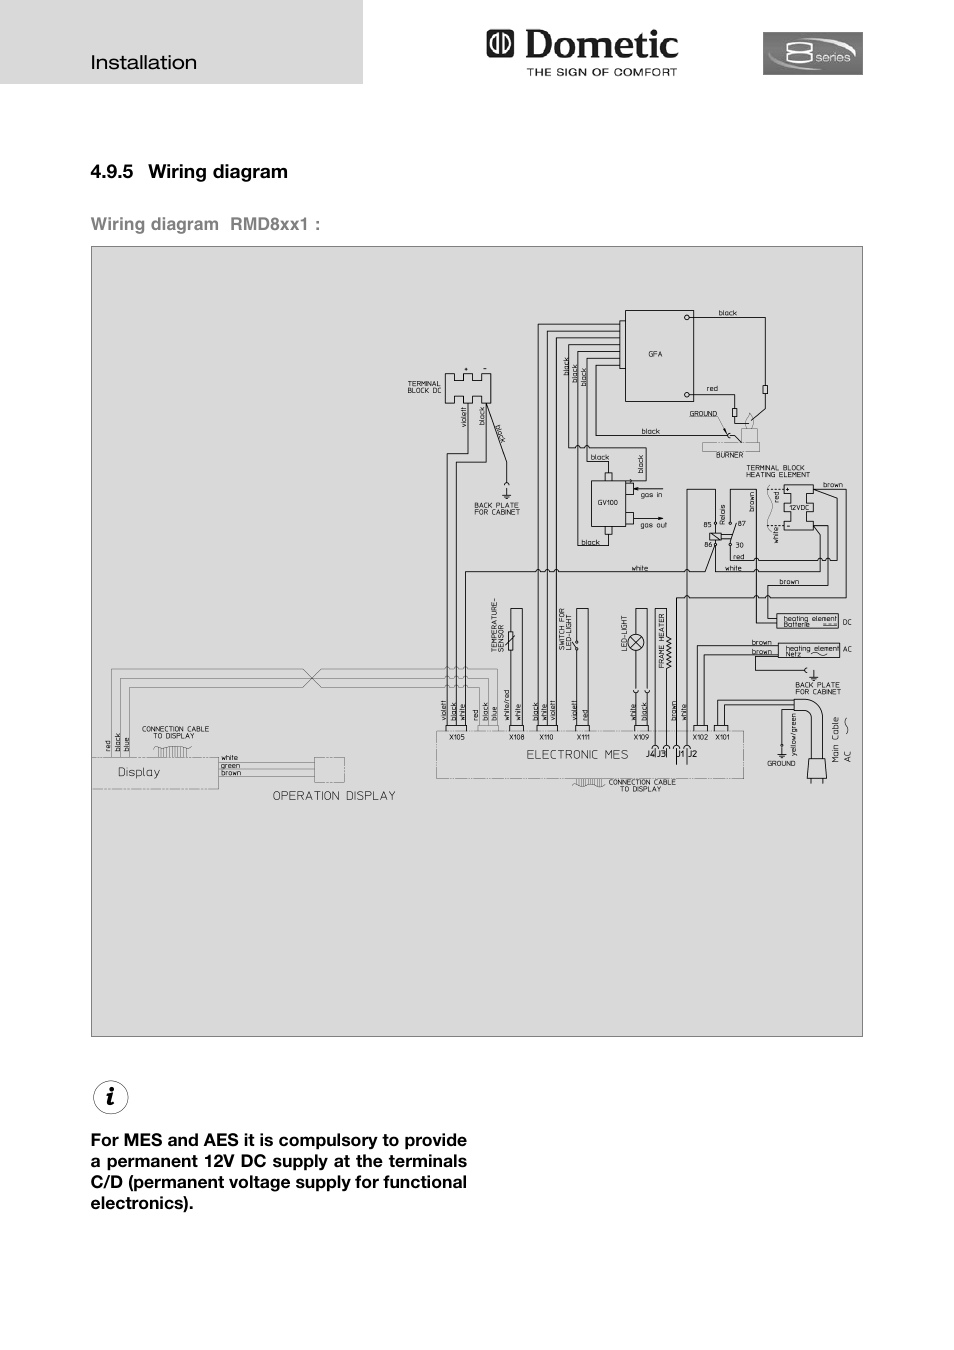 medium resolution of dometic ccc2 wiring diagram 27 wiring diagram images wiring refrigerator diagram board dometic 1350slmx dometic refrigerator wiring diagram rm2662